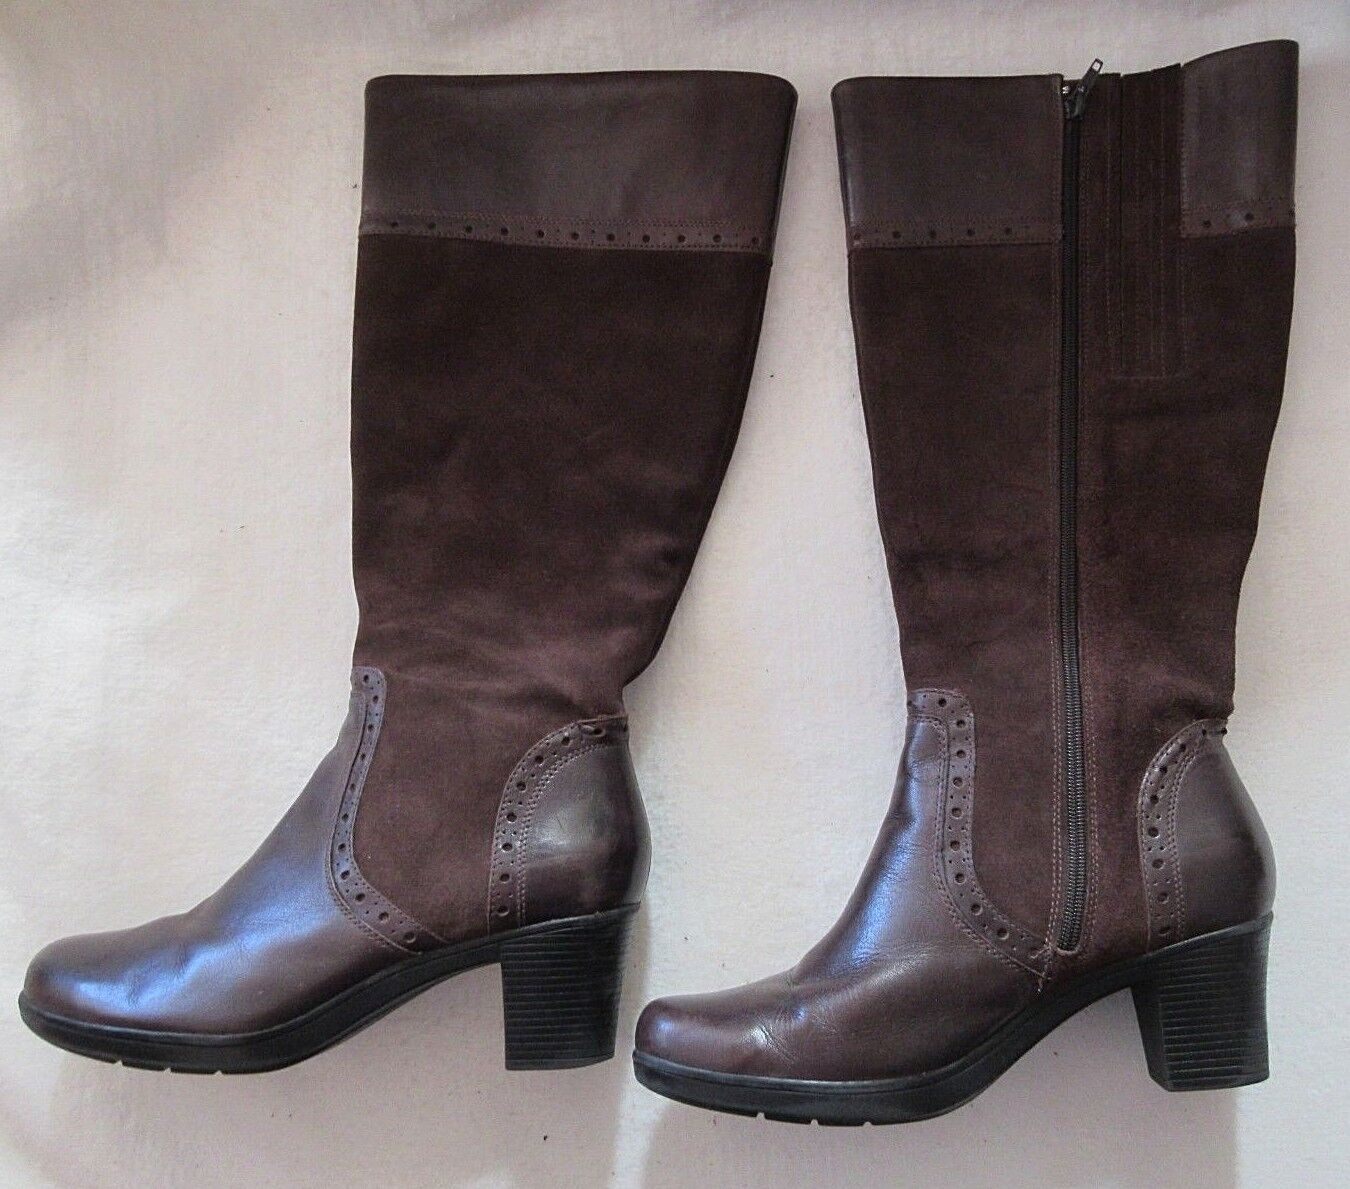 CLARKS CLARKS CLARKS Womens 12 M Dream Regal Brown Leather Suede Zip Knee High Boots 37629 322b36